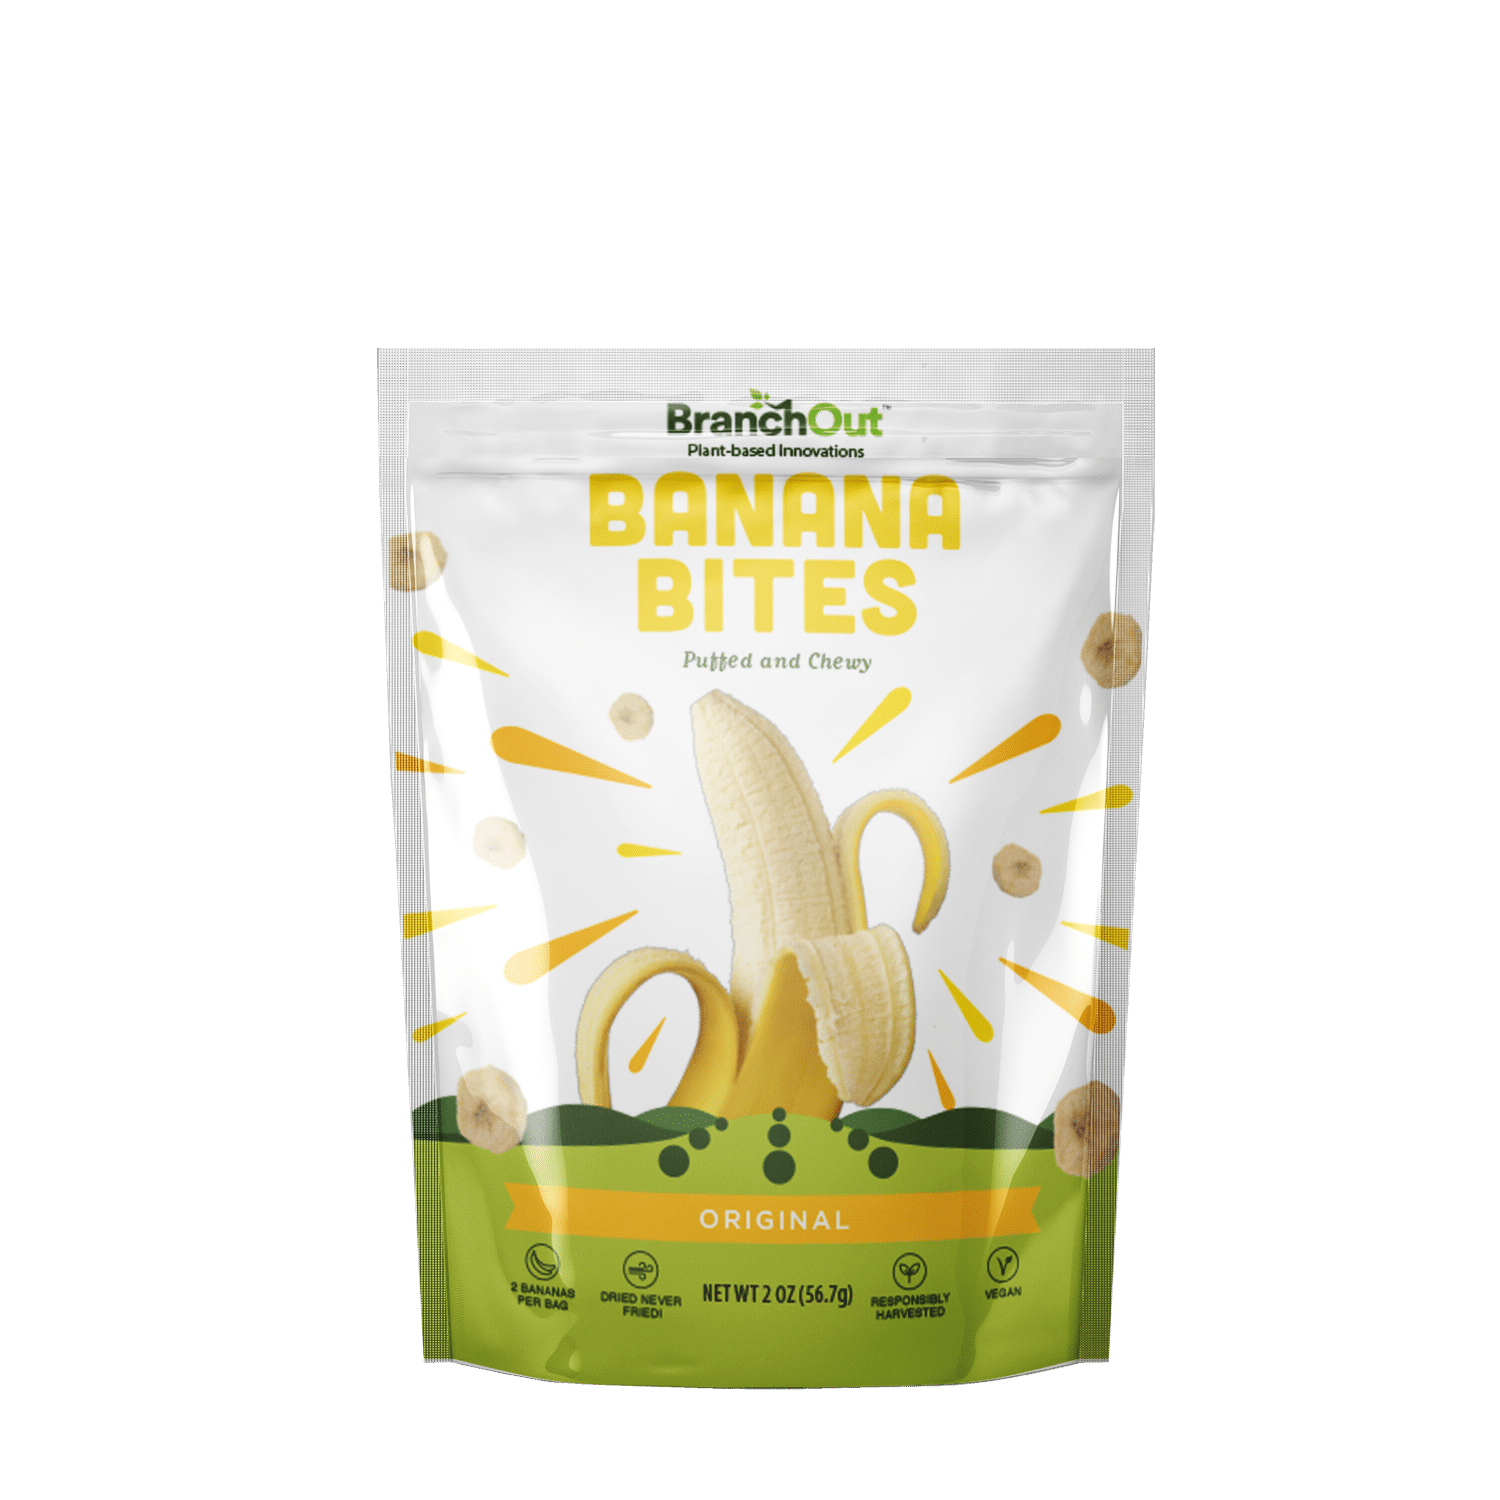 BranchOut to Launch Avocado Chips, Banana Bites at Expo West